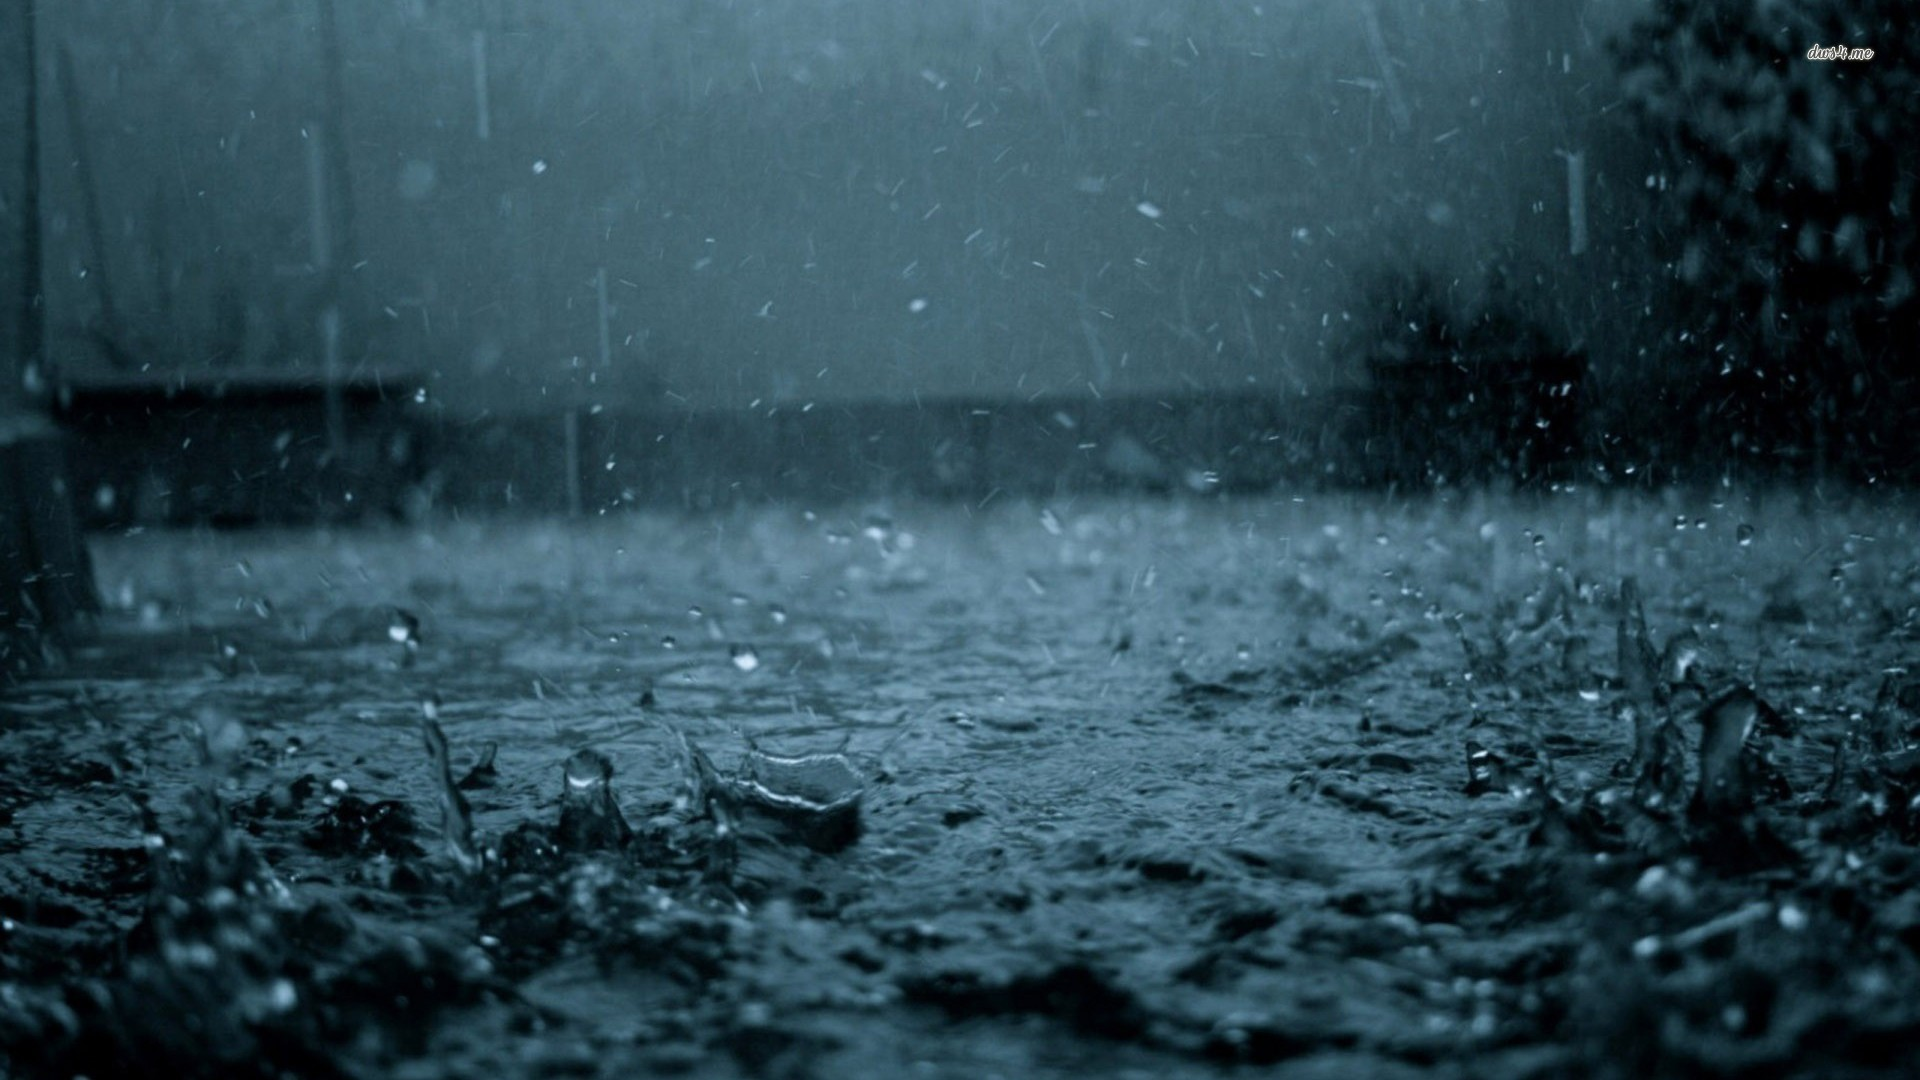 Rain Wallpaper Hd 1920x1080 Posted By Zoey Johnson